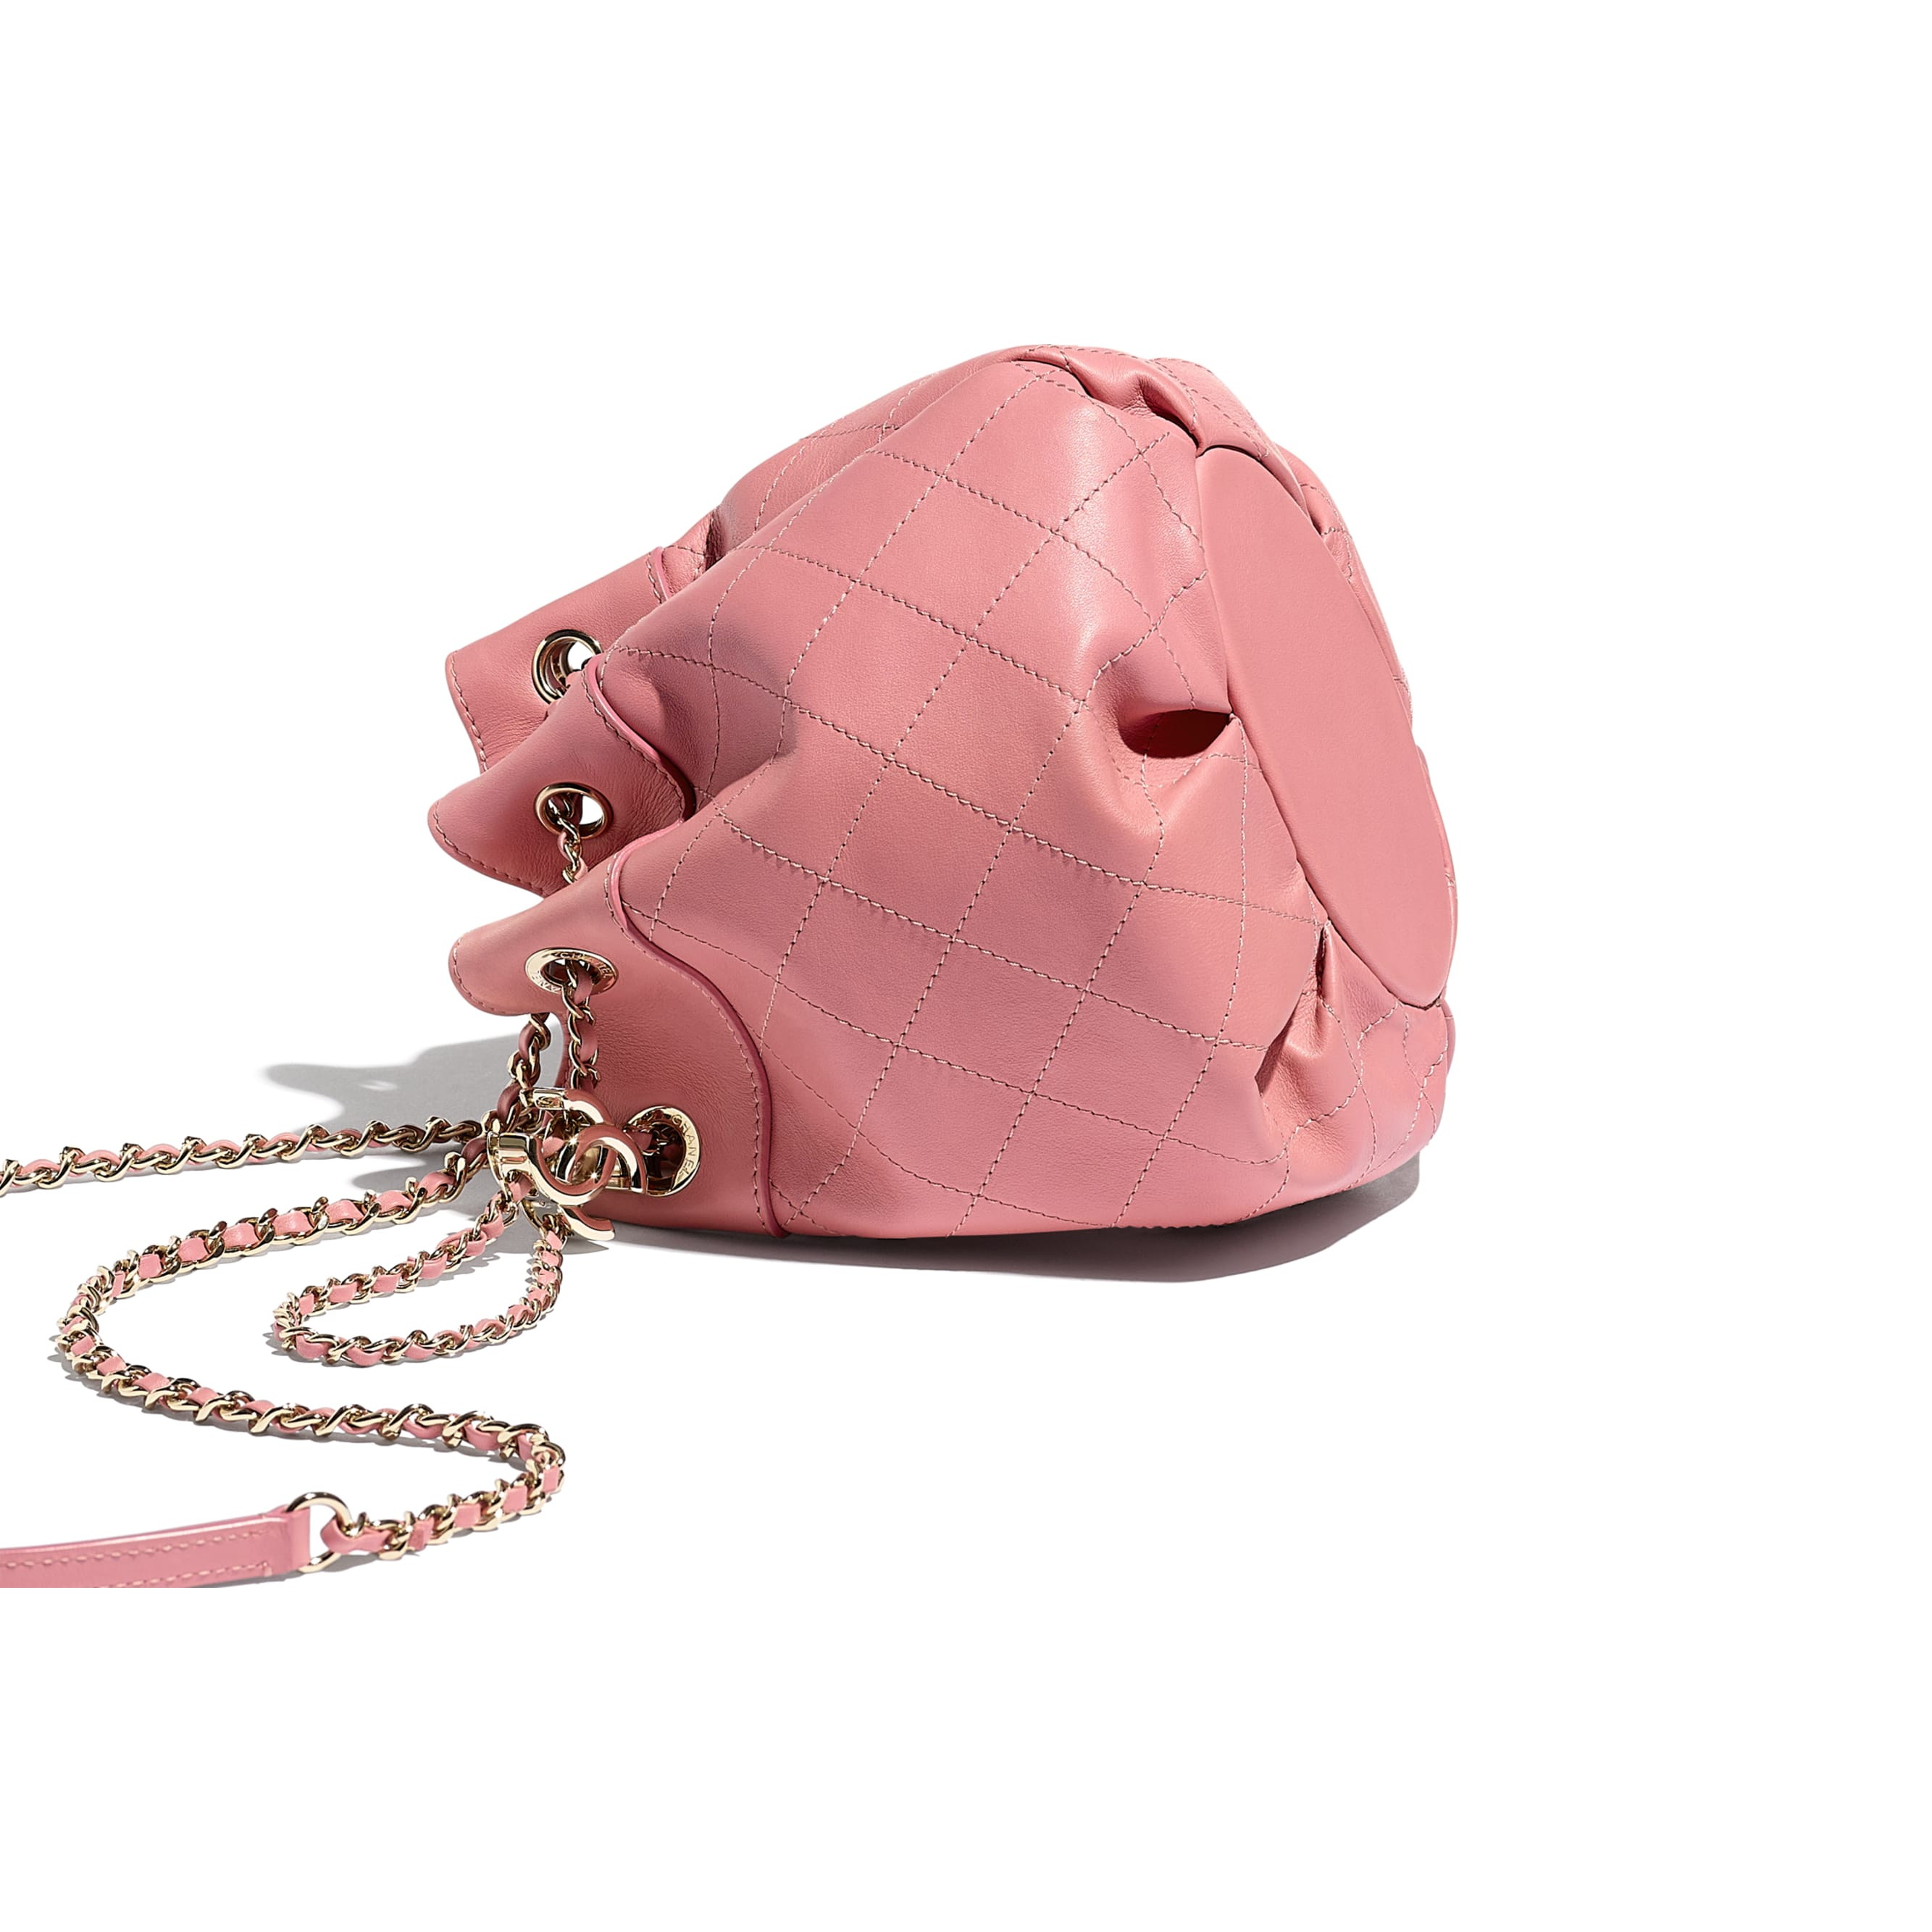 Small Drawstring Bag - Pink - Calfskin & Gold-Tone Metal - CHANEL - Extra view - see standard sized version